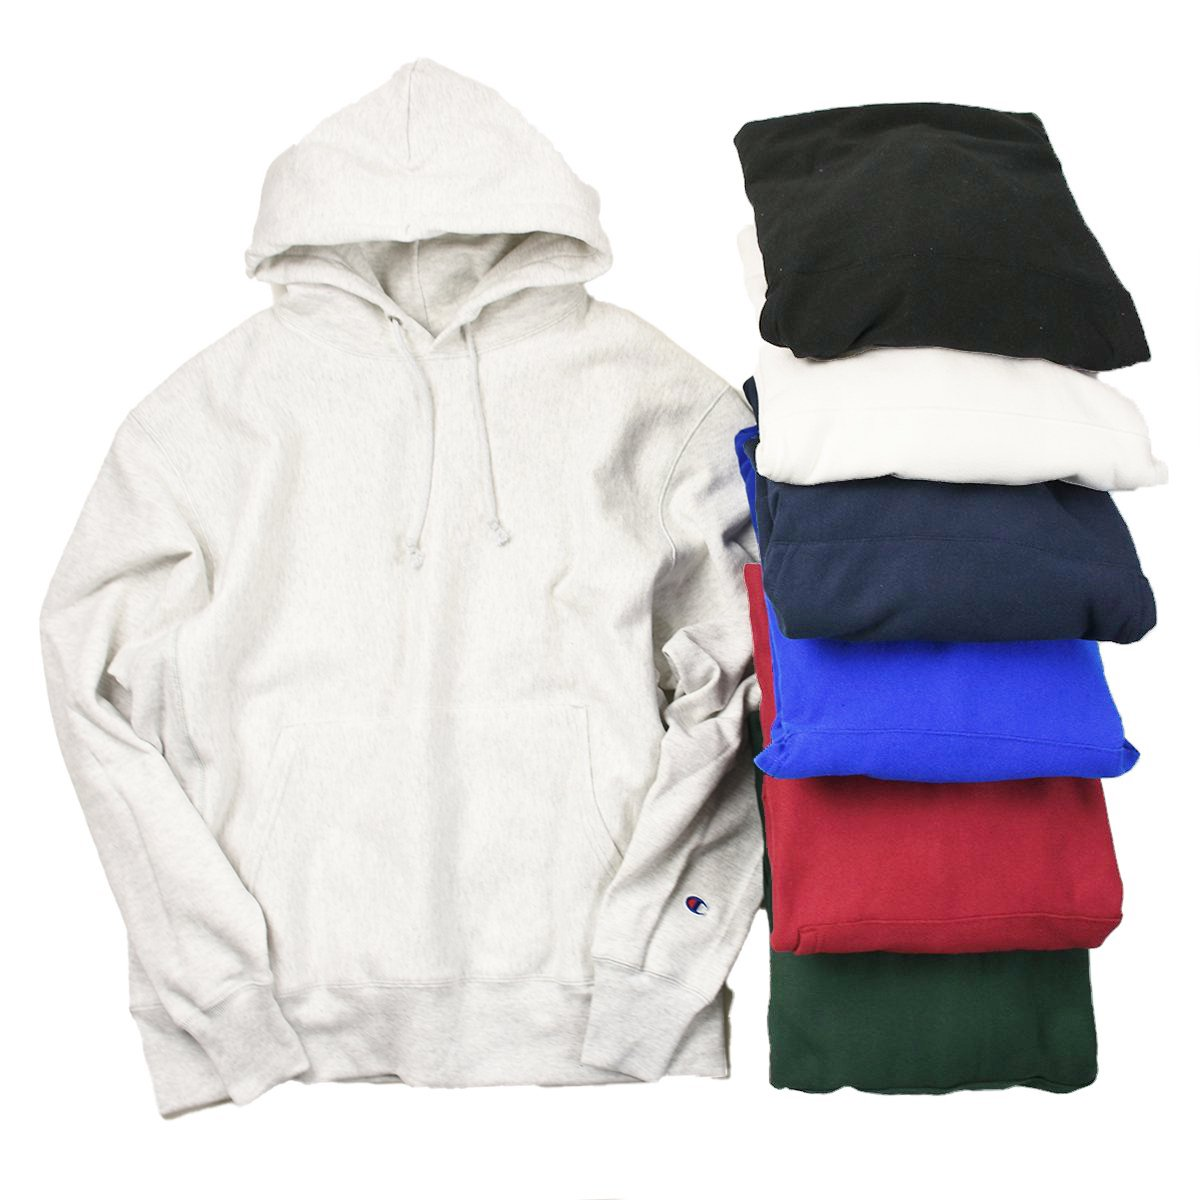 【Champion U.S.A】Reverse Weave  Pullover (6Color)